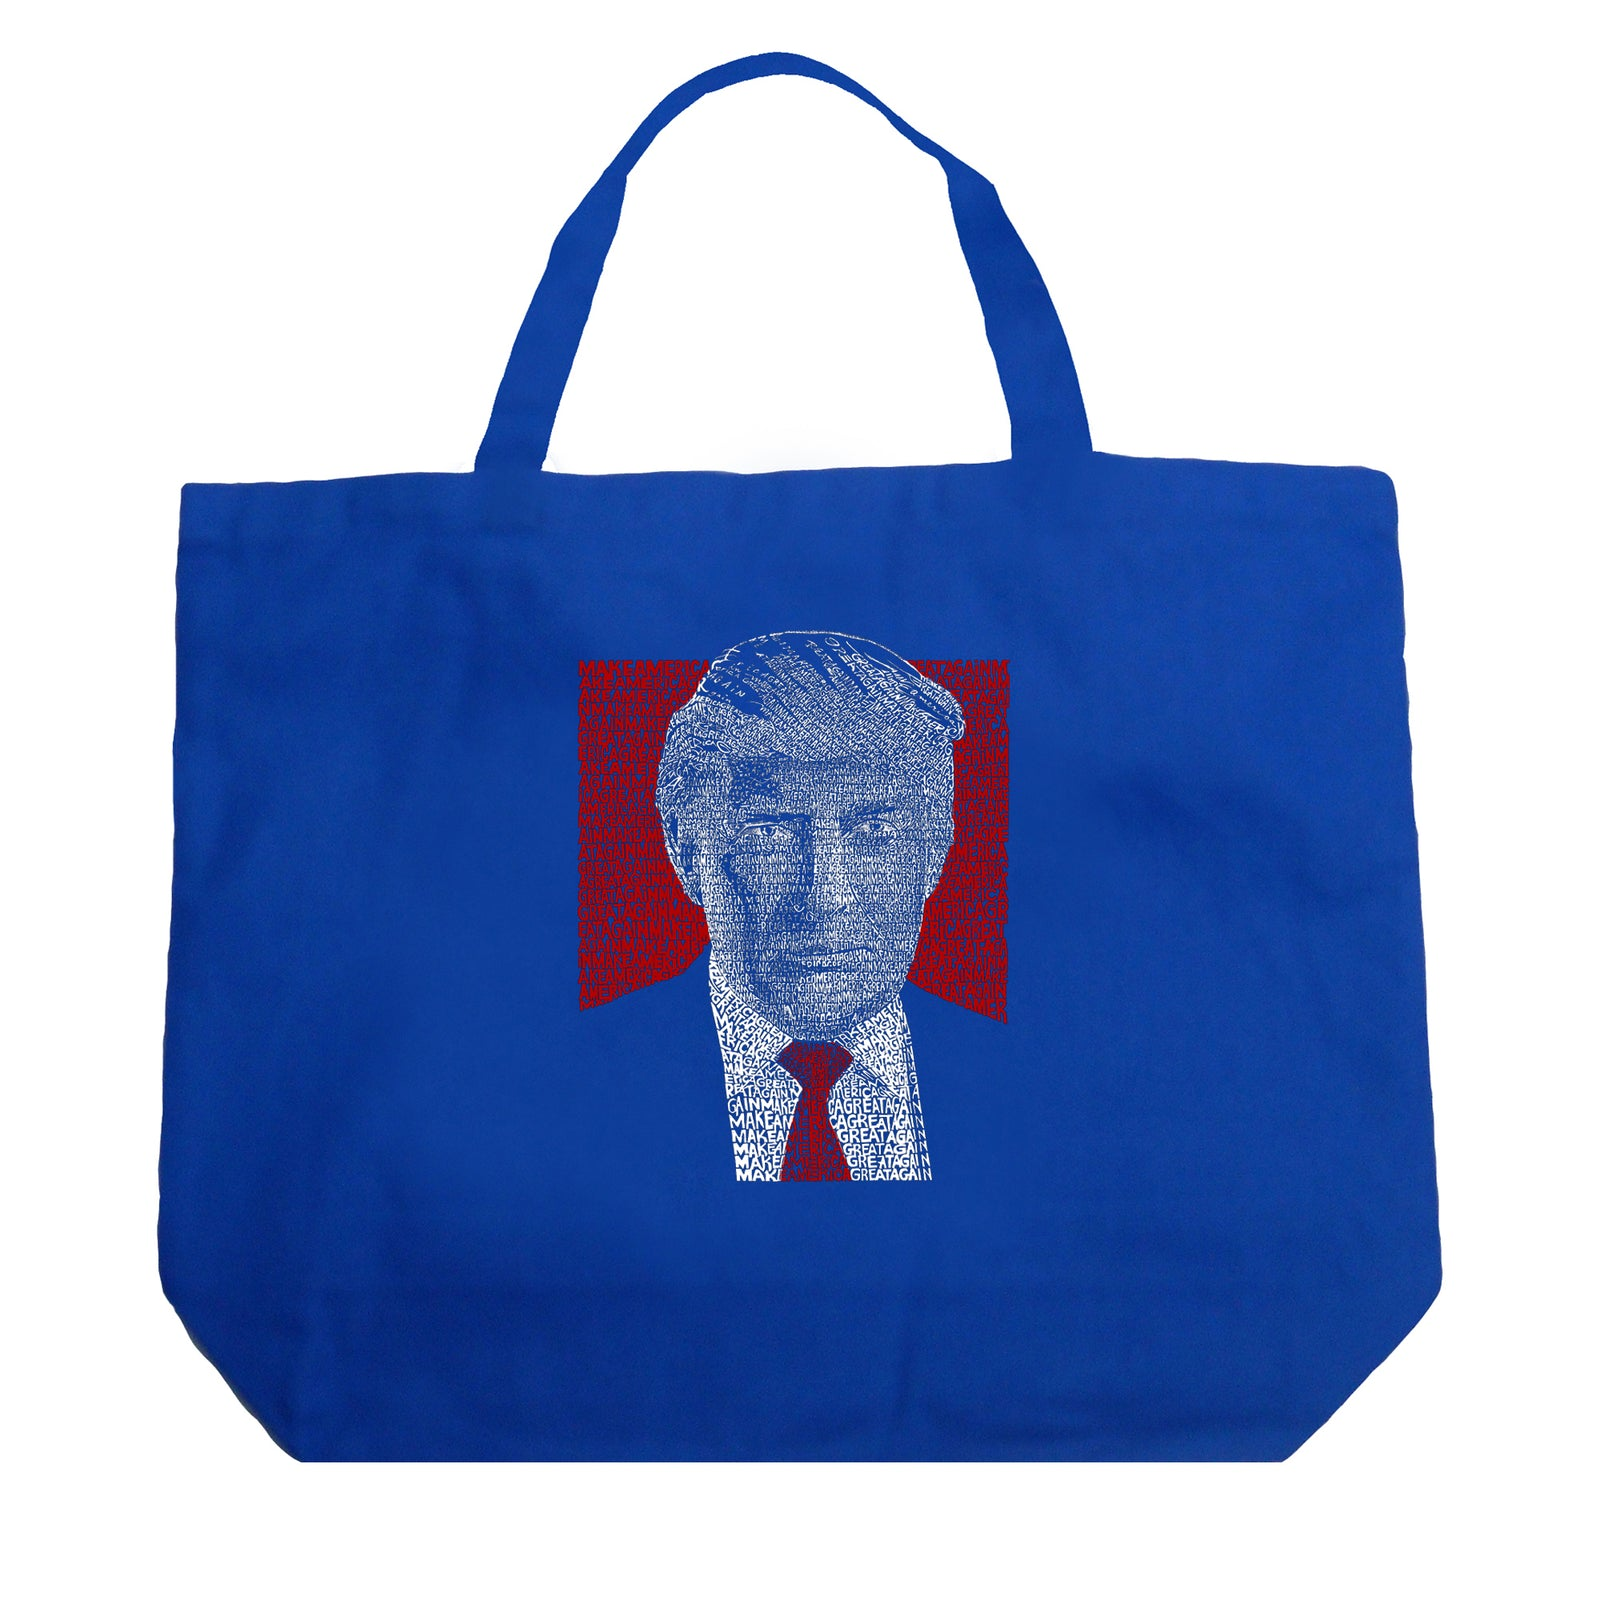 Large Tote Bag - TRUMP 2016 - Make America Great Again